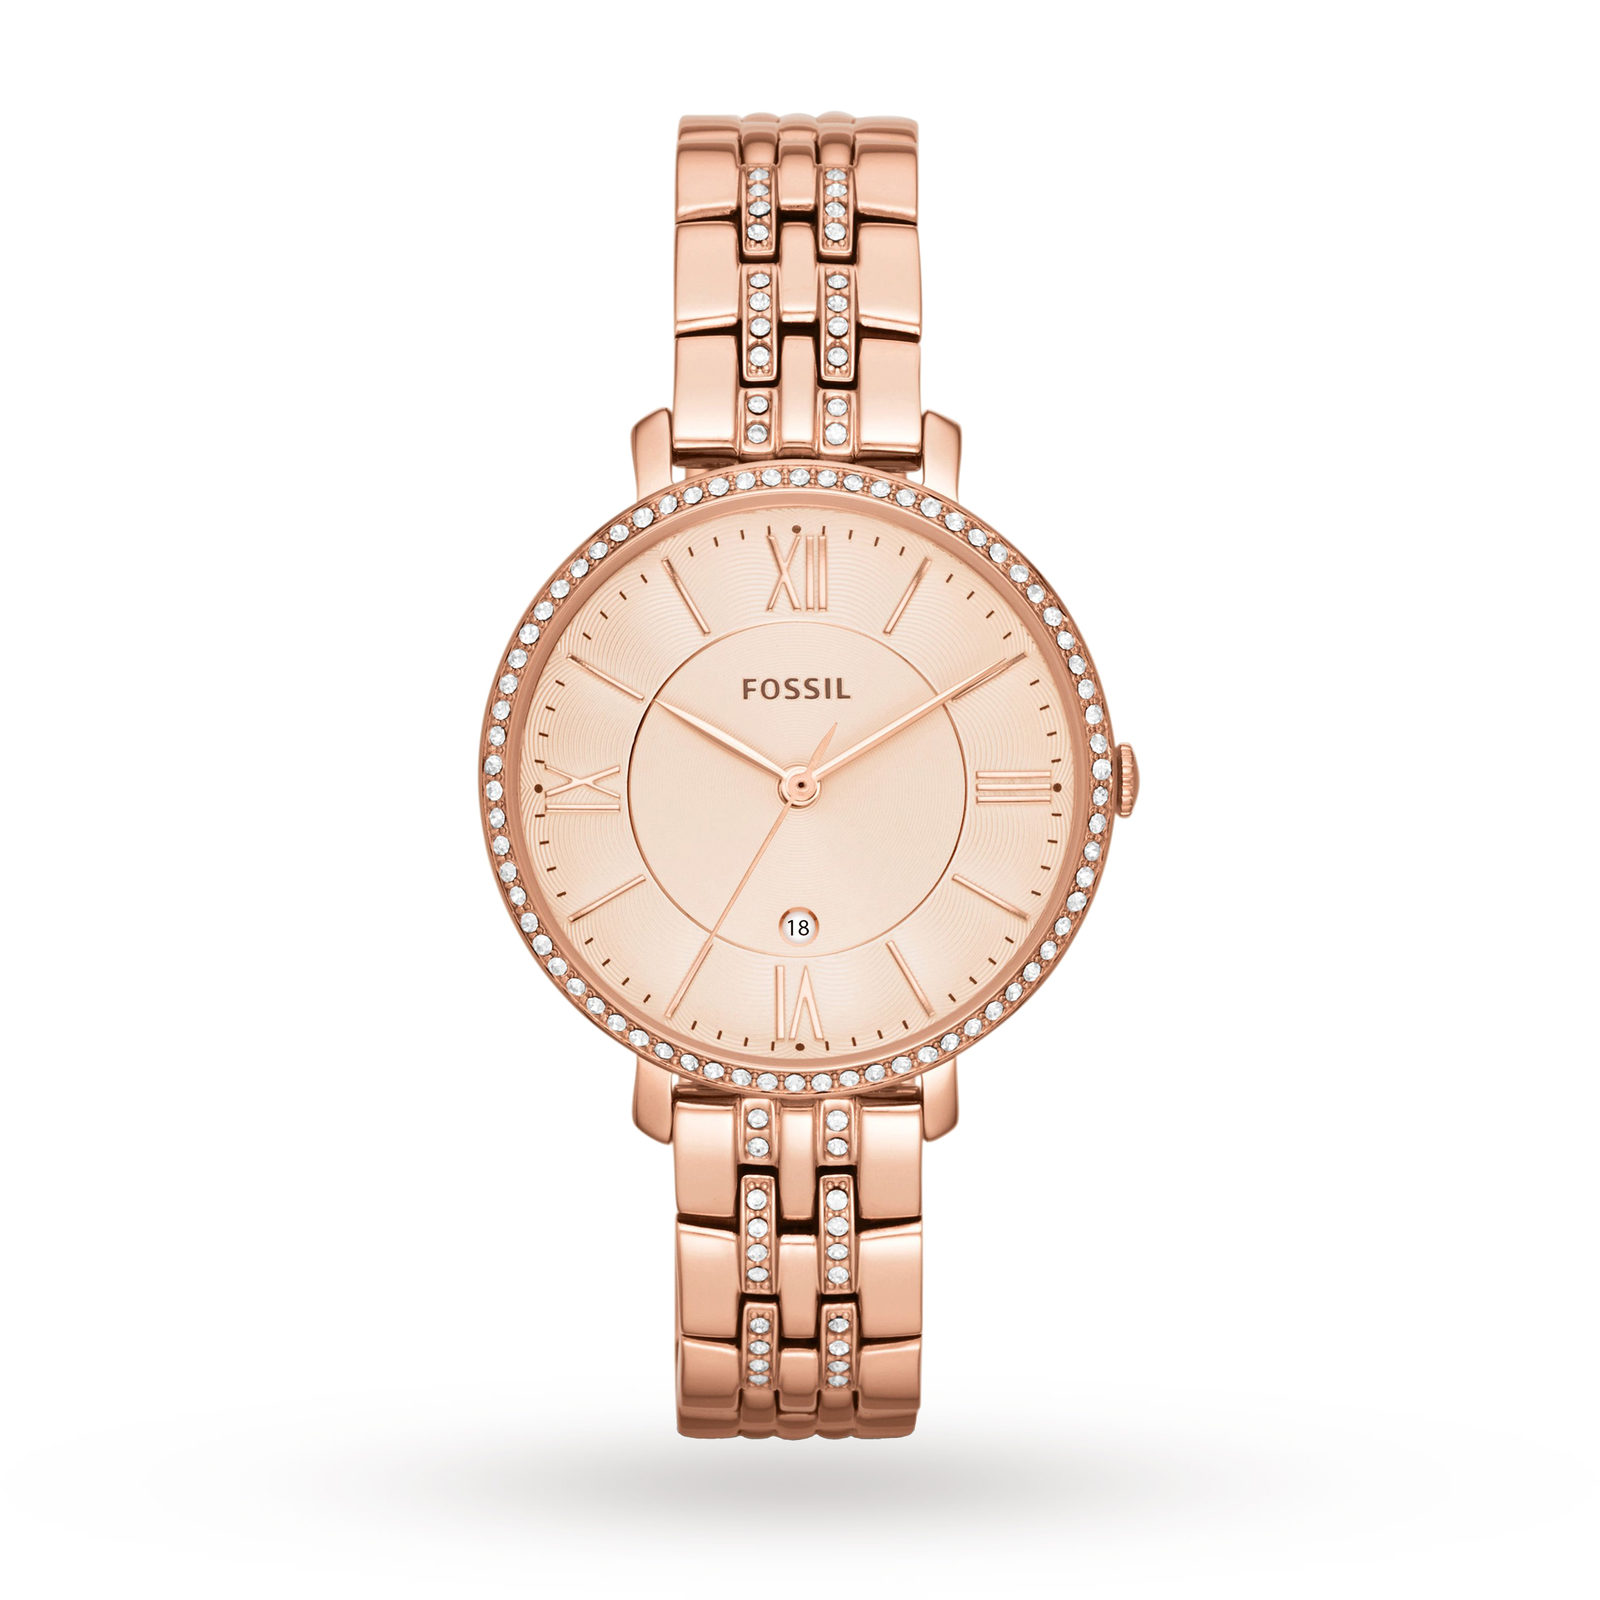 Fossil Ladies' Jacqueline Watch